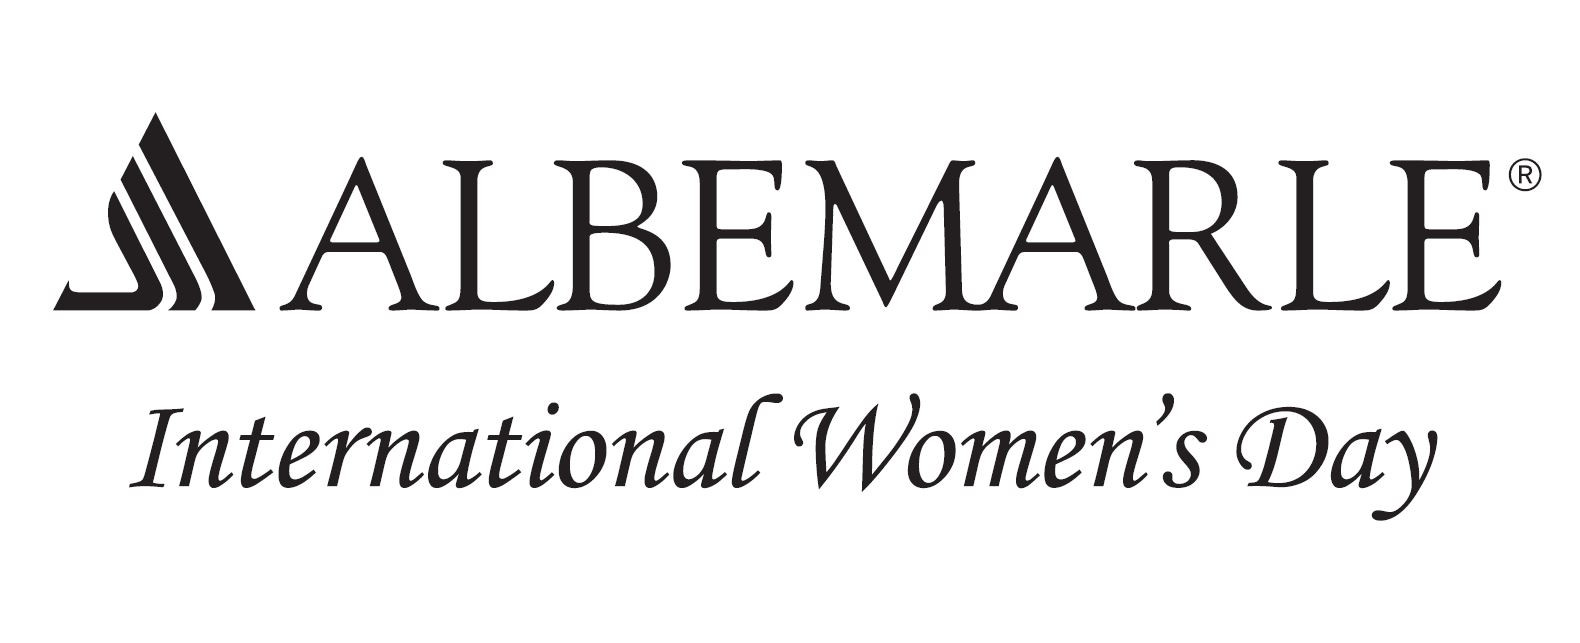 Albemarle International Women's Day